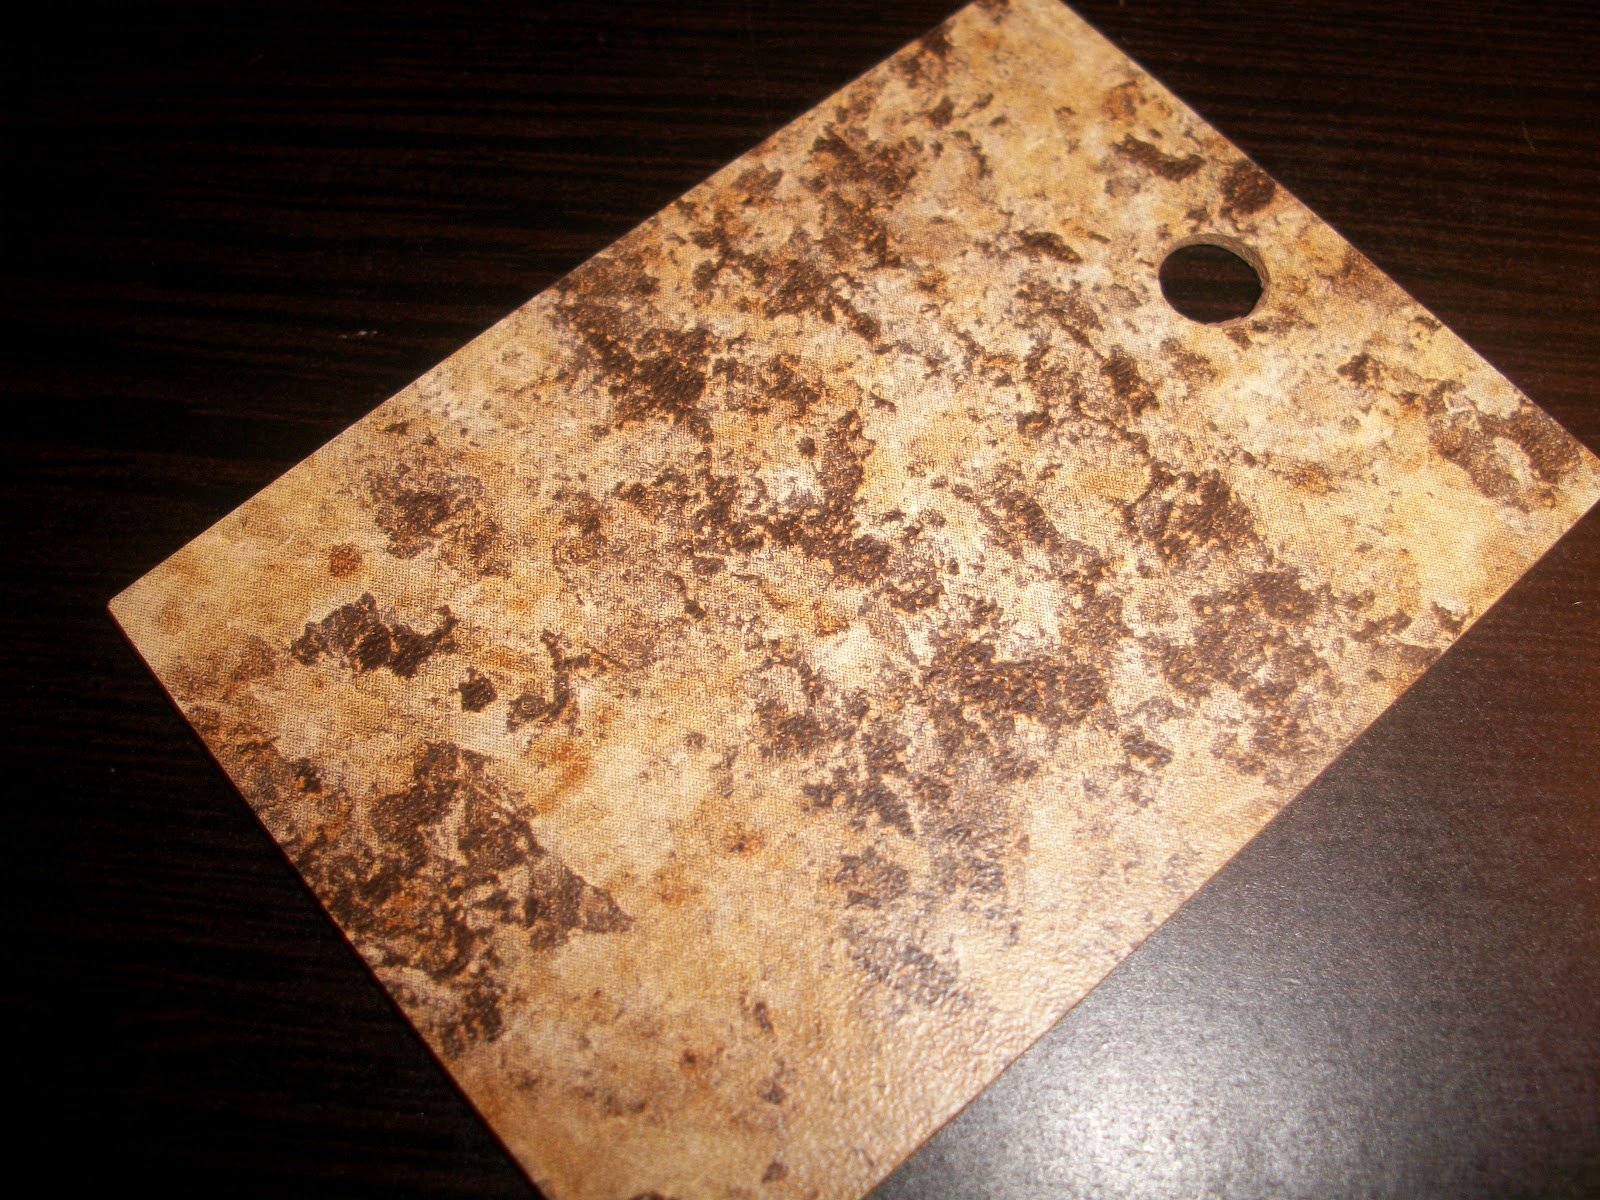 Granite Countertop Paint Lowes : picked up this sample granite at Lowes just to get an idea of what ...